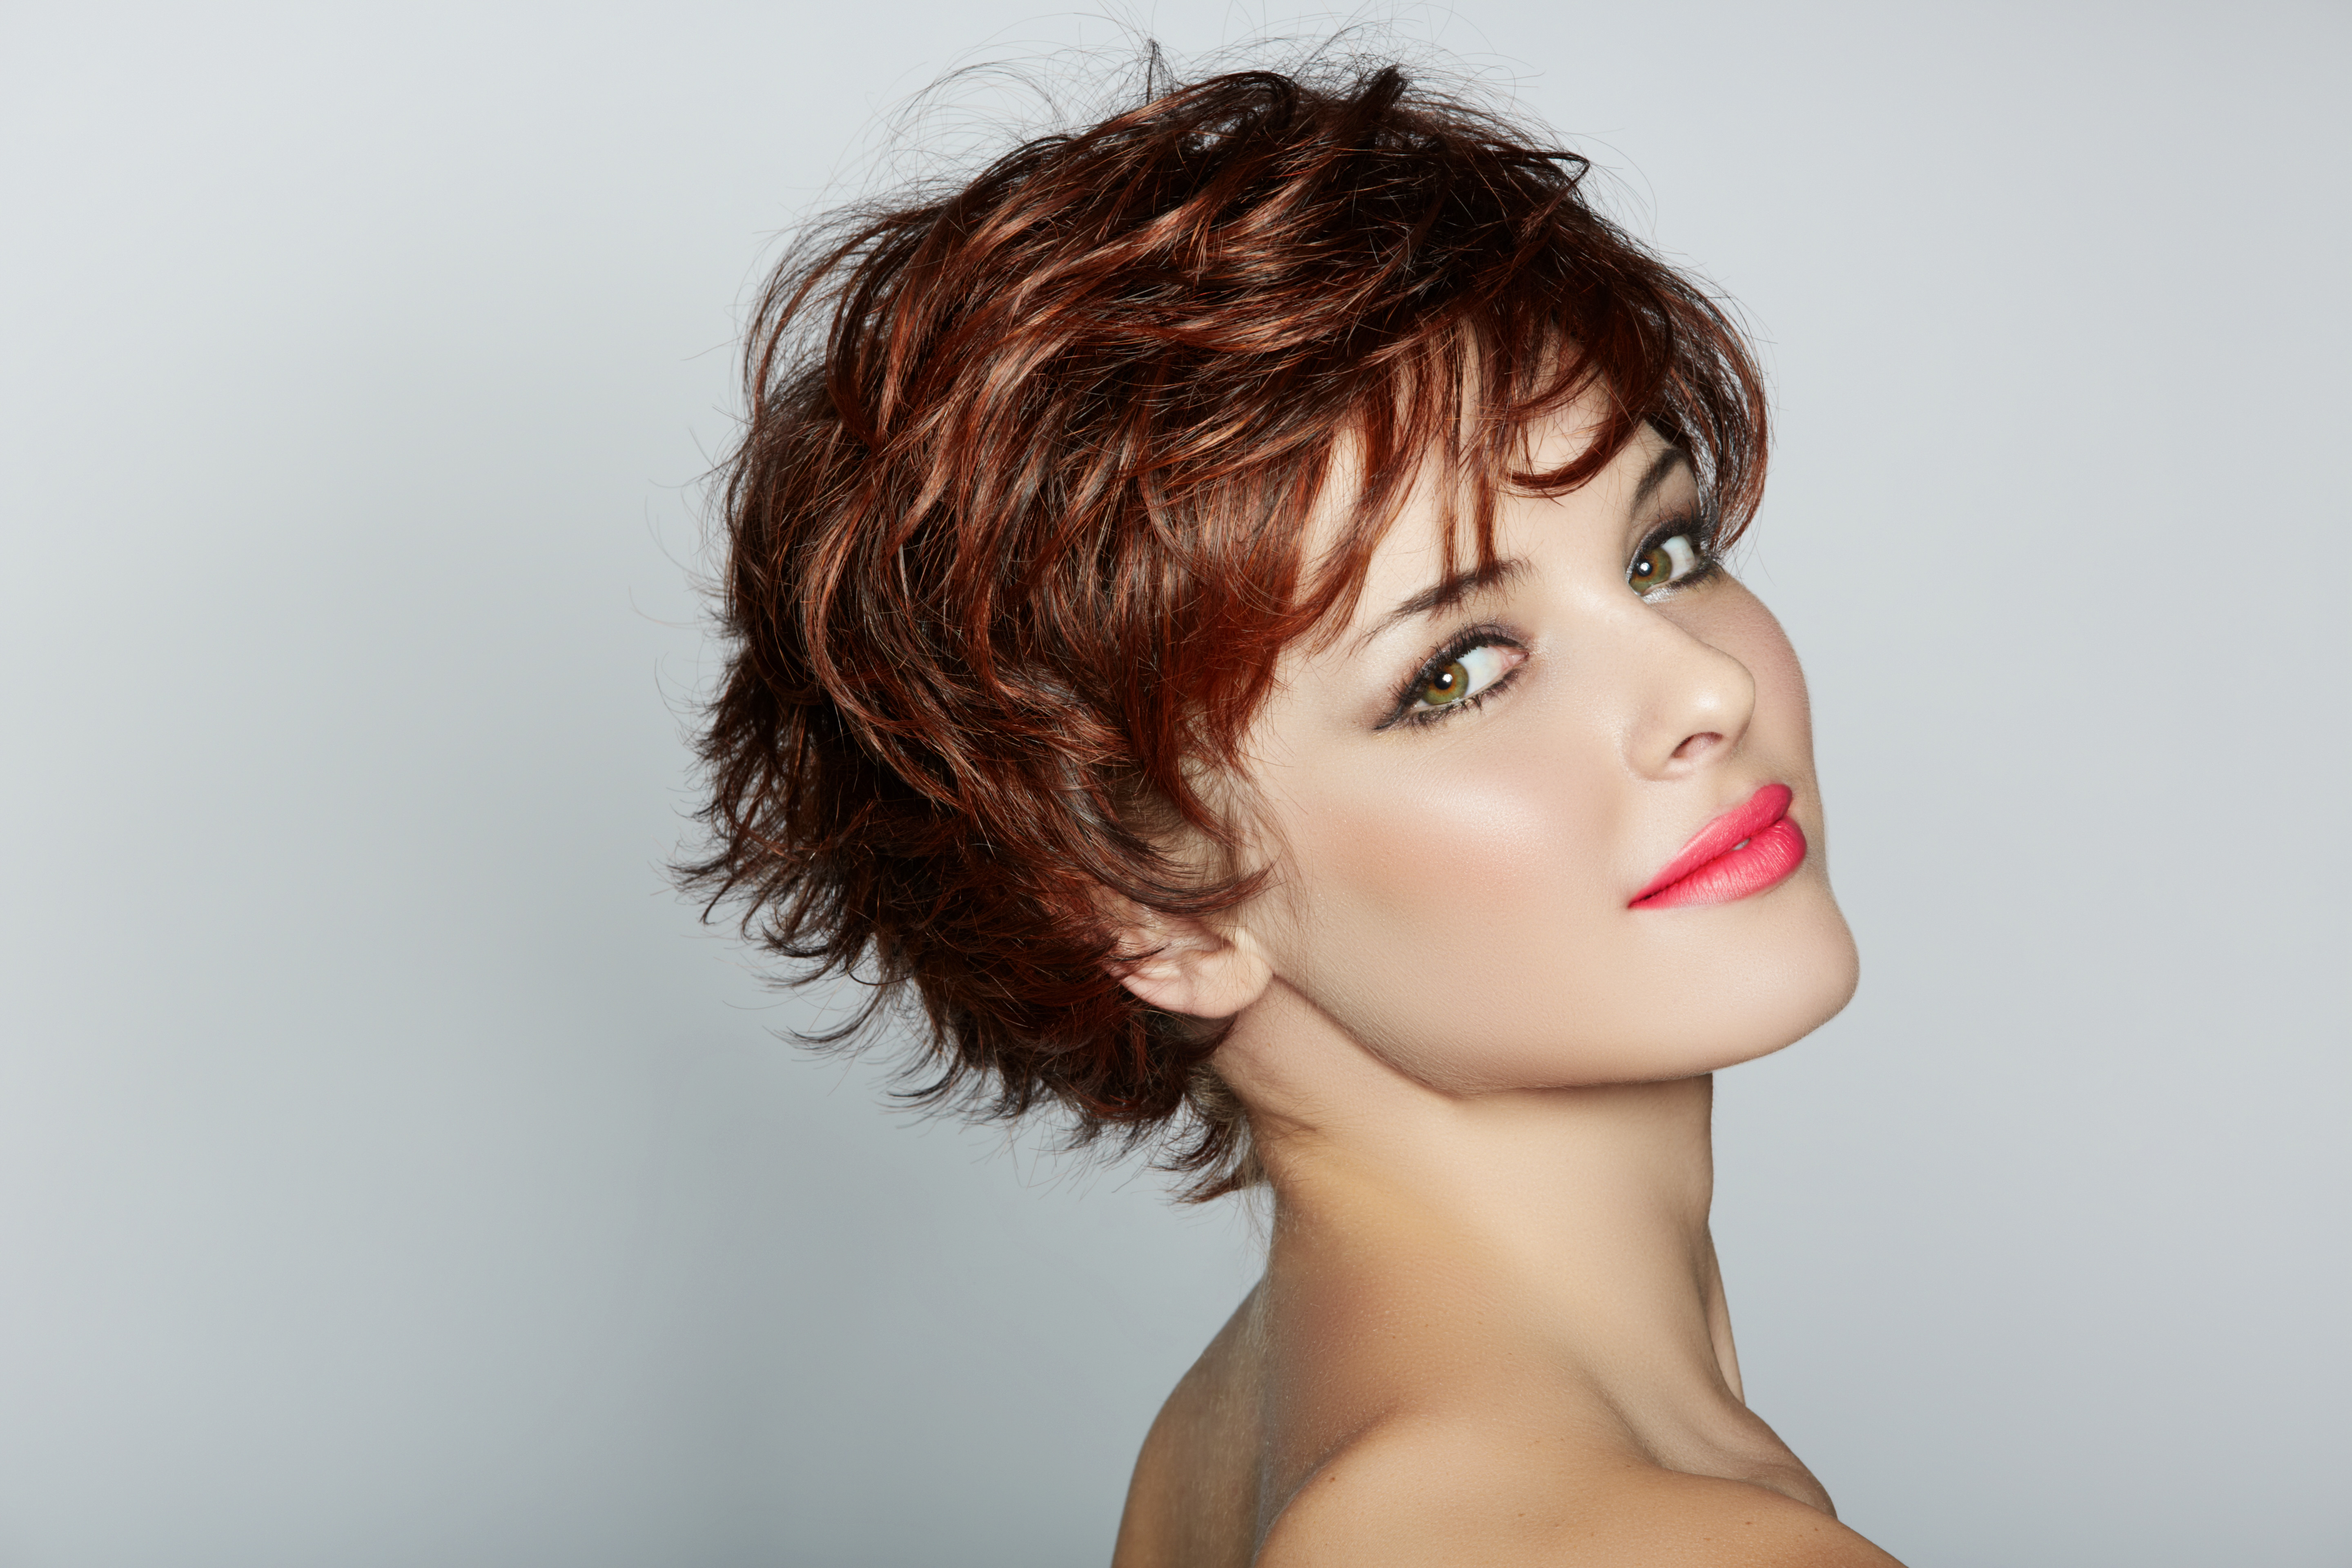 Best ideas about Short Haircuts For Wavy Hair . Save or Pin 25 Short Curly Hair With Bangs Now.